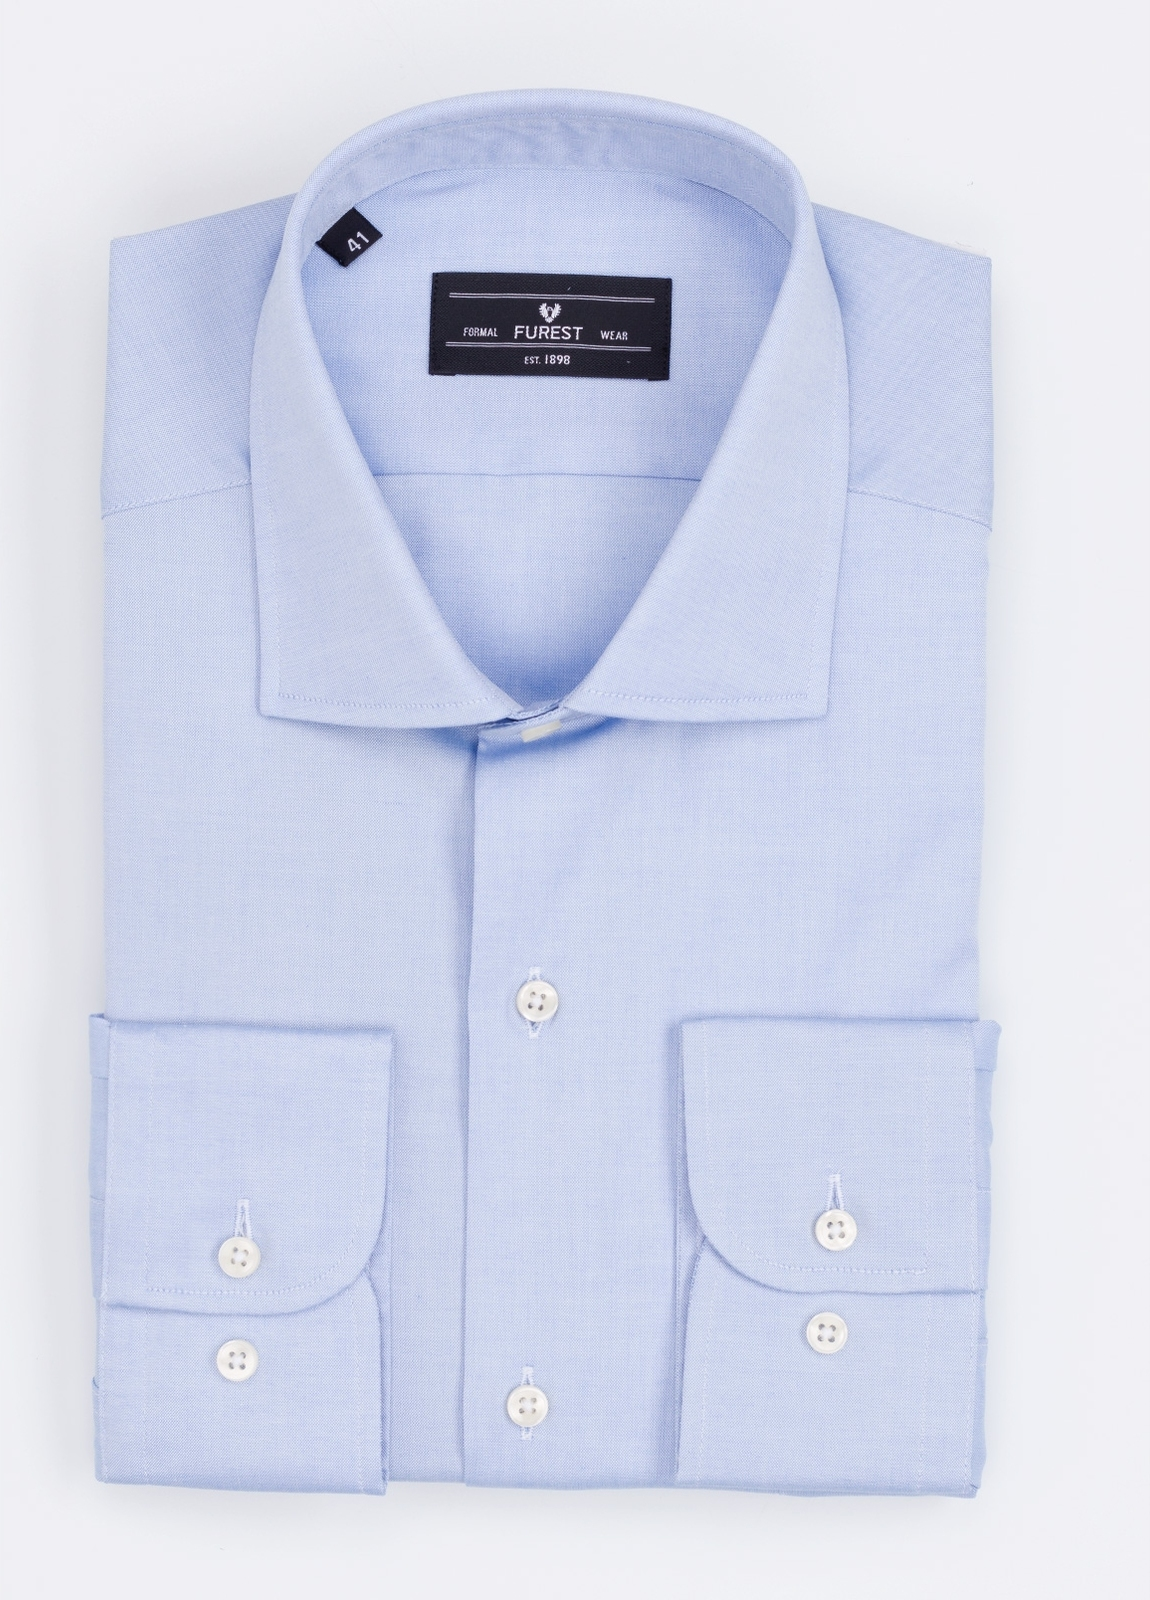 Camisa Formal Wear REGULAR FIT cuello italiano modelo TAILORED NAPOLI color azul. 100% Algodón.